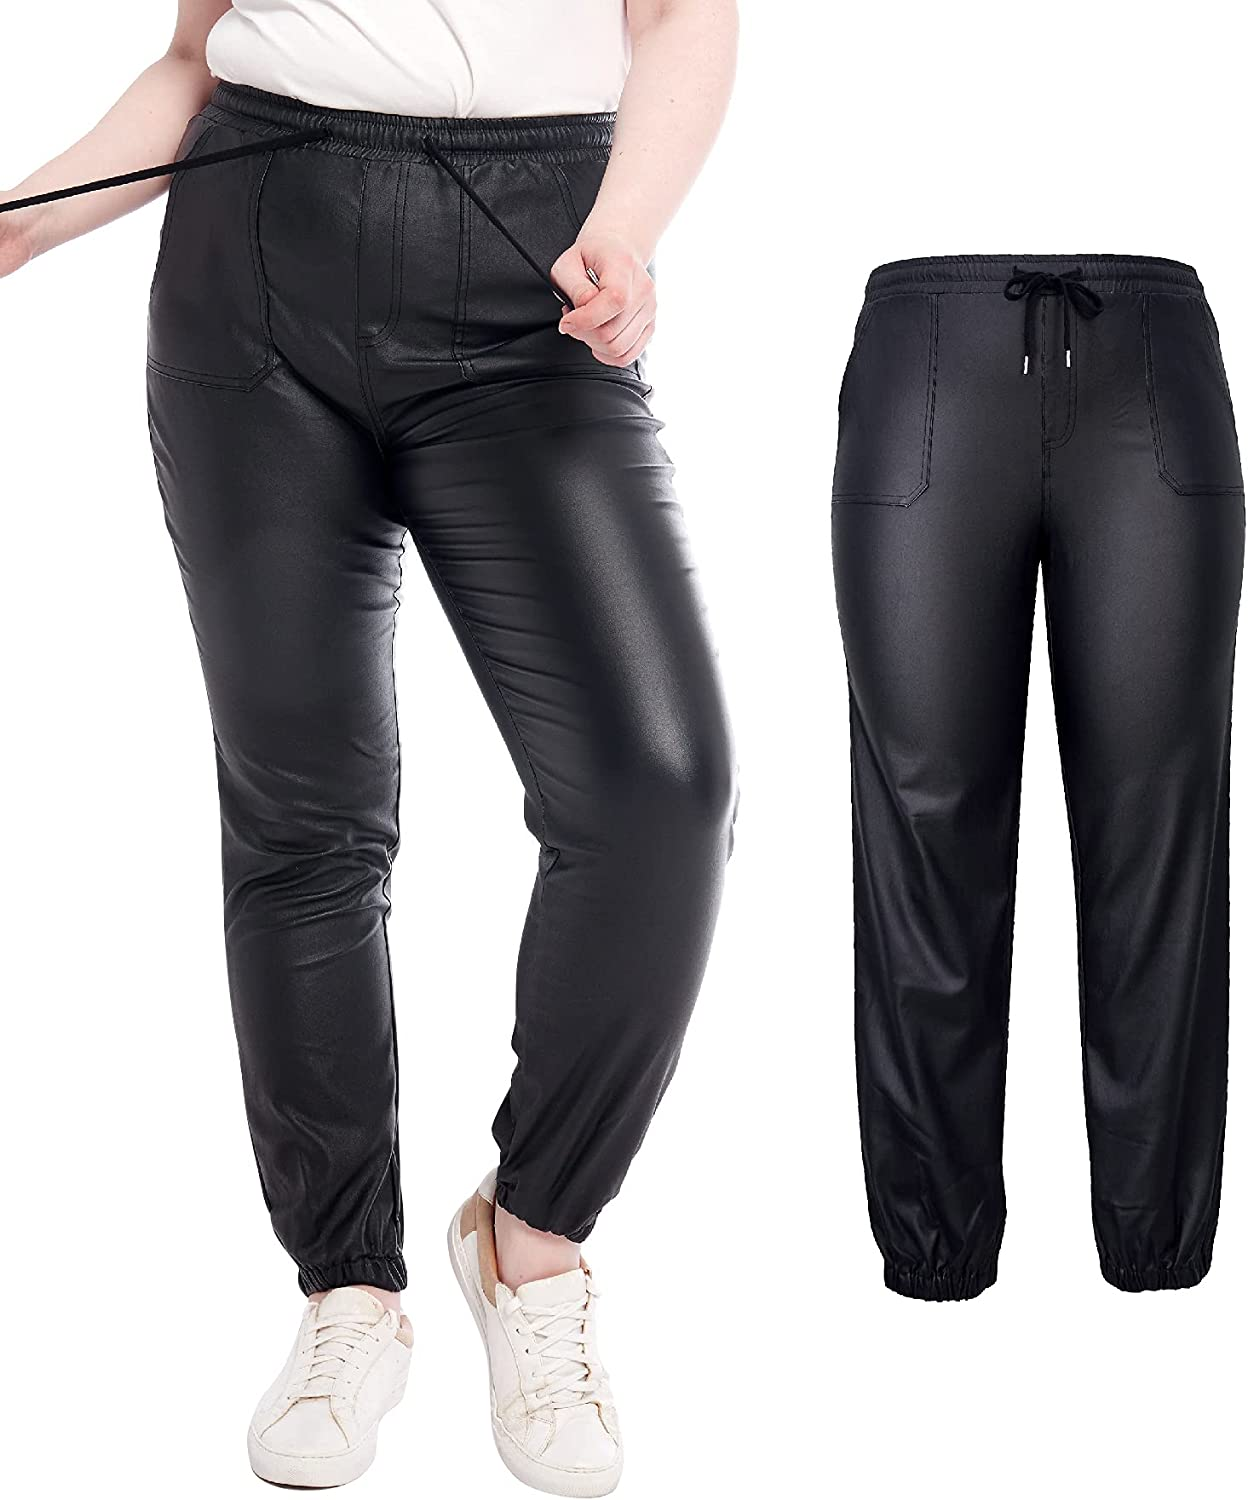 Womens Stretchy Jeggings, Faux Leather Legging Pants with Pockets, Regular and Plus Size